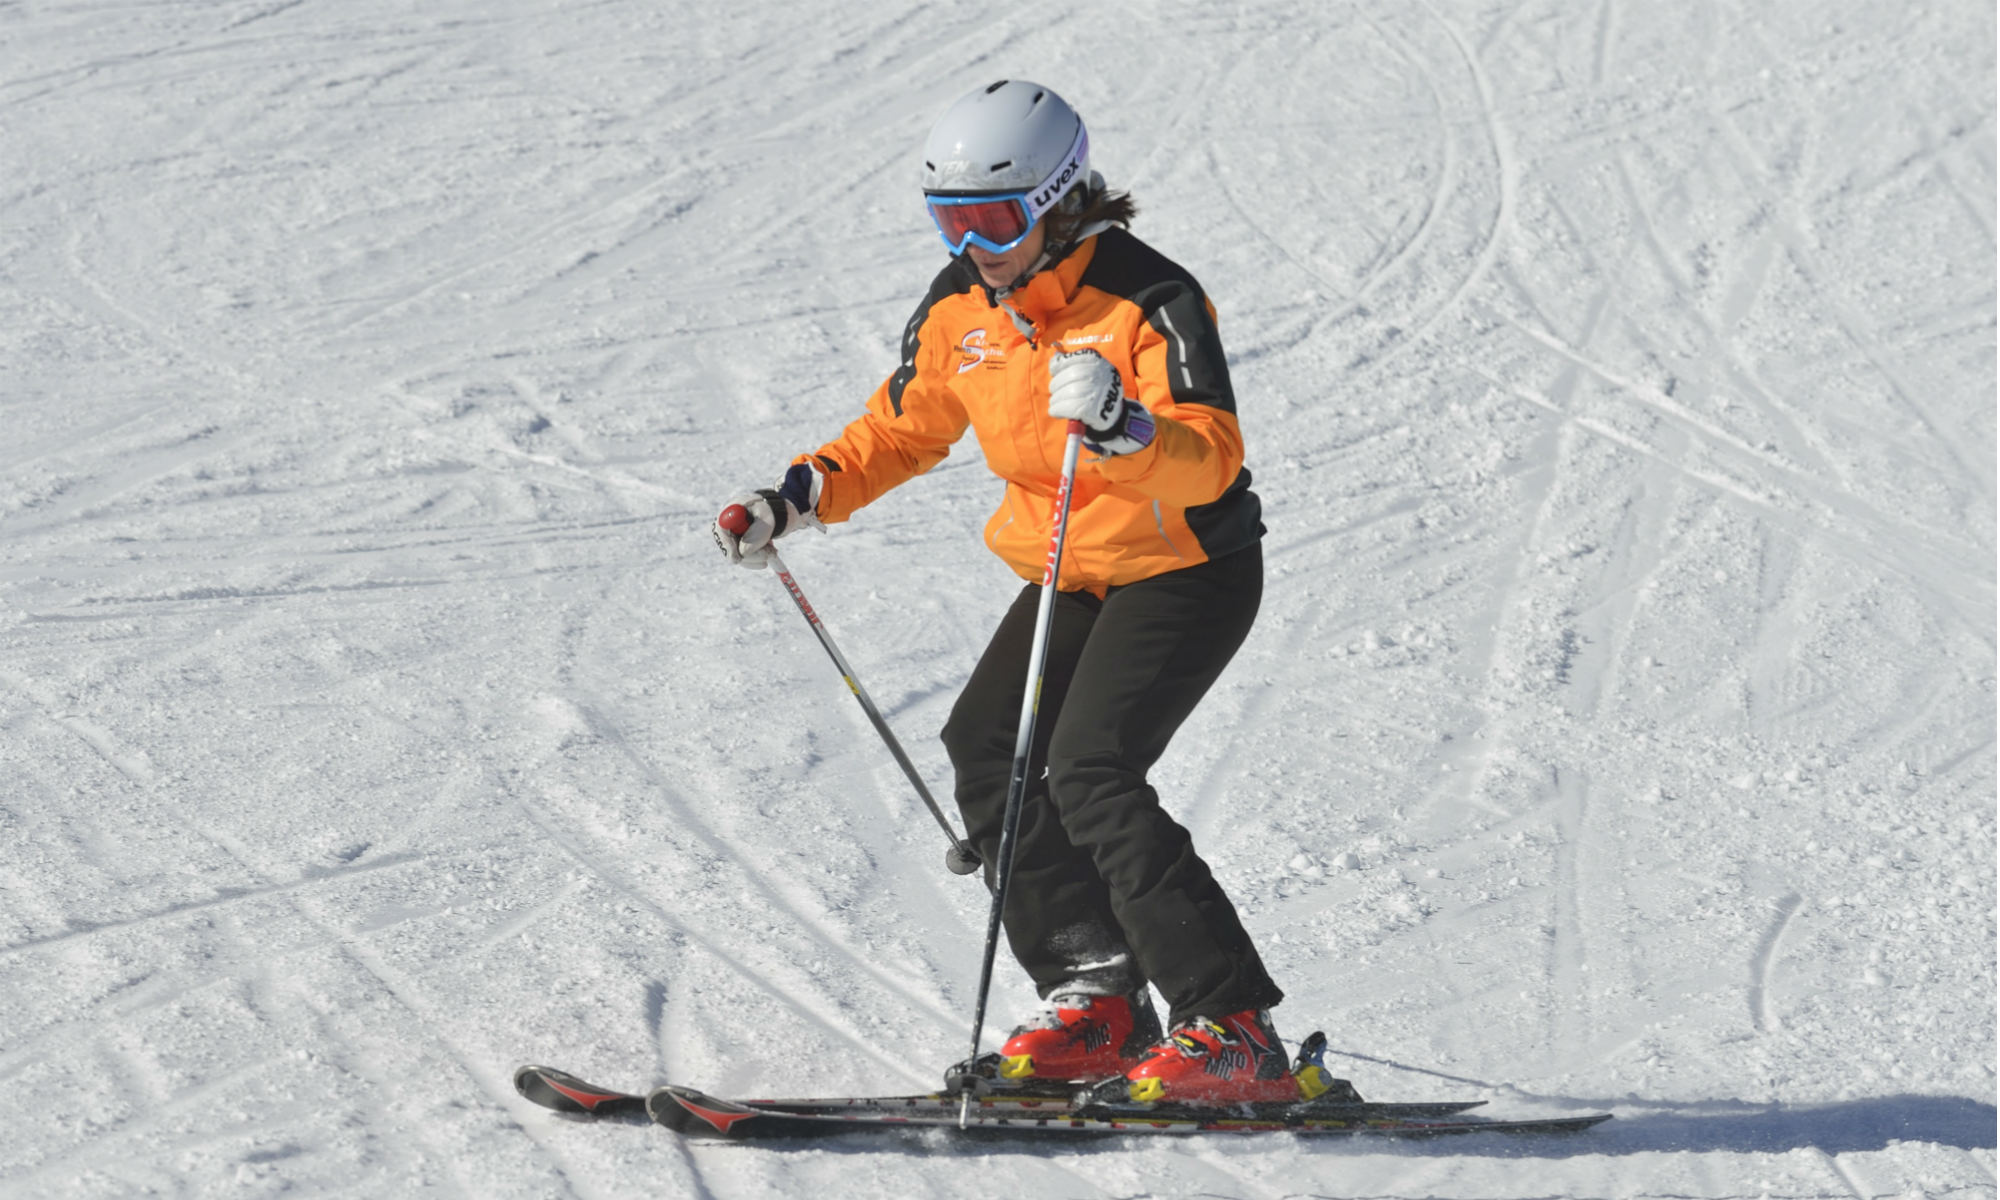 Ingrid Salvenmoser demonstrates the correct use of ski sticks when doing parallel turns on a sunny piste.